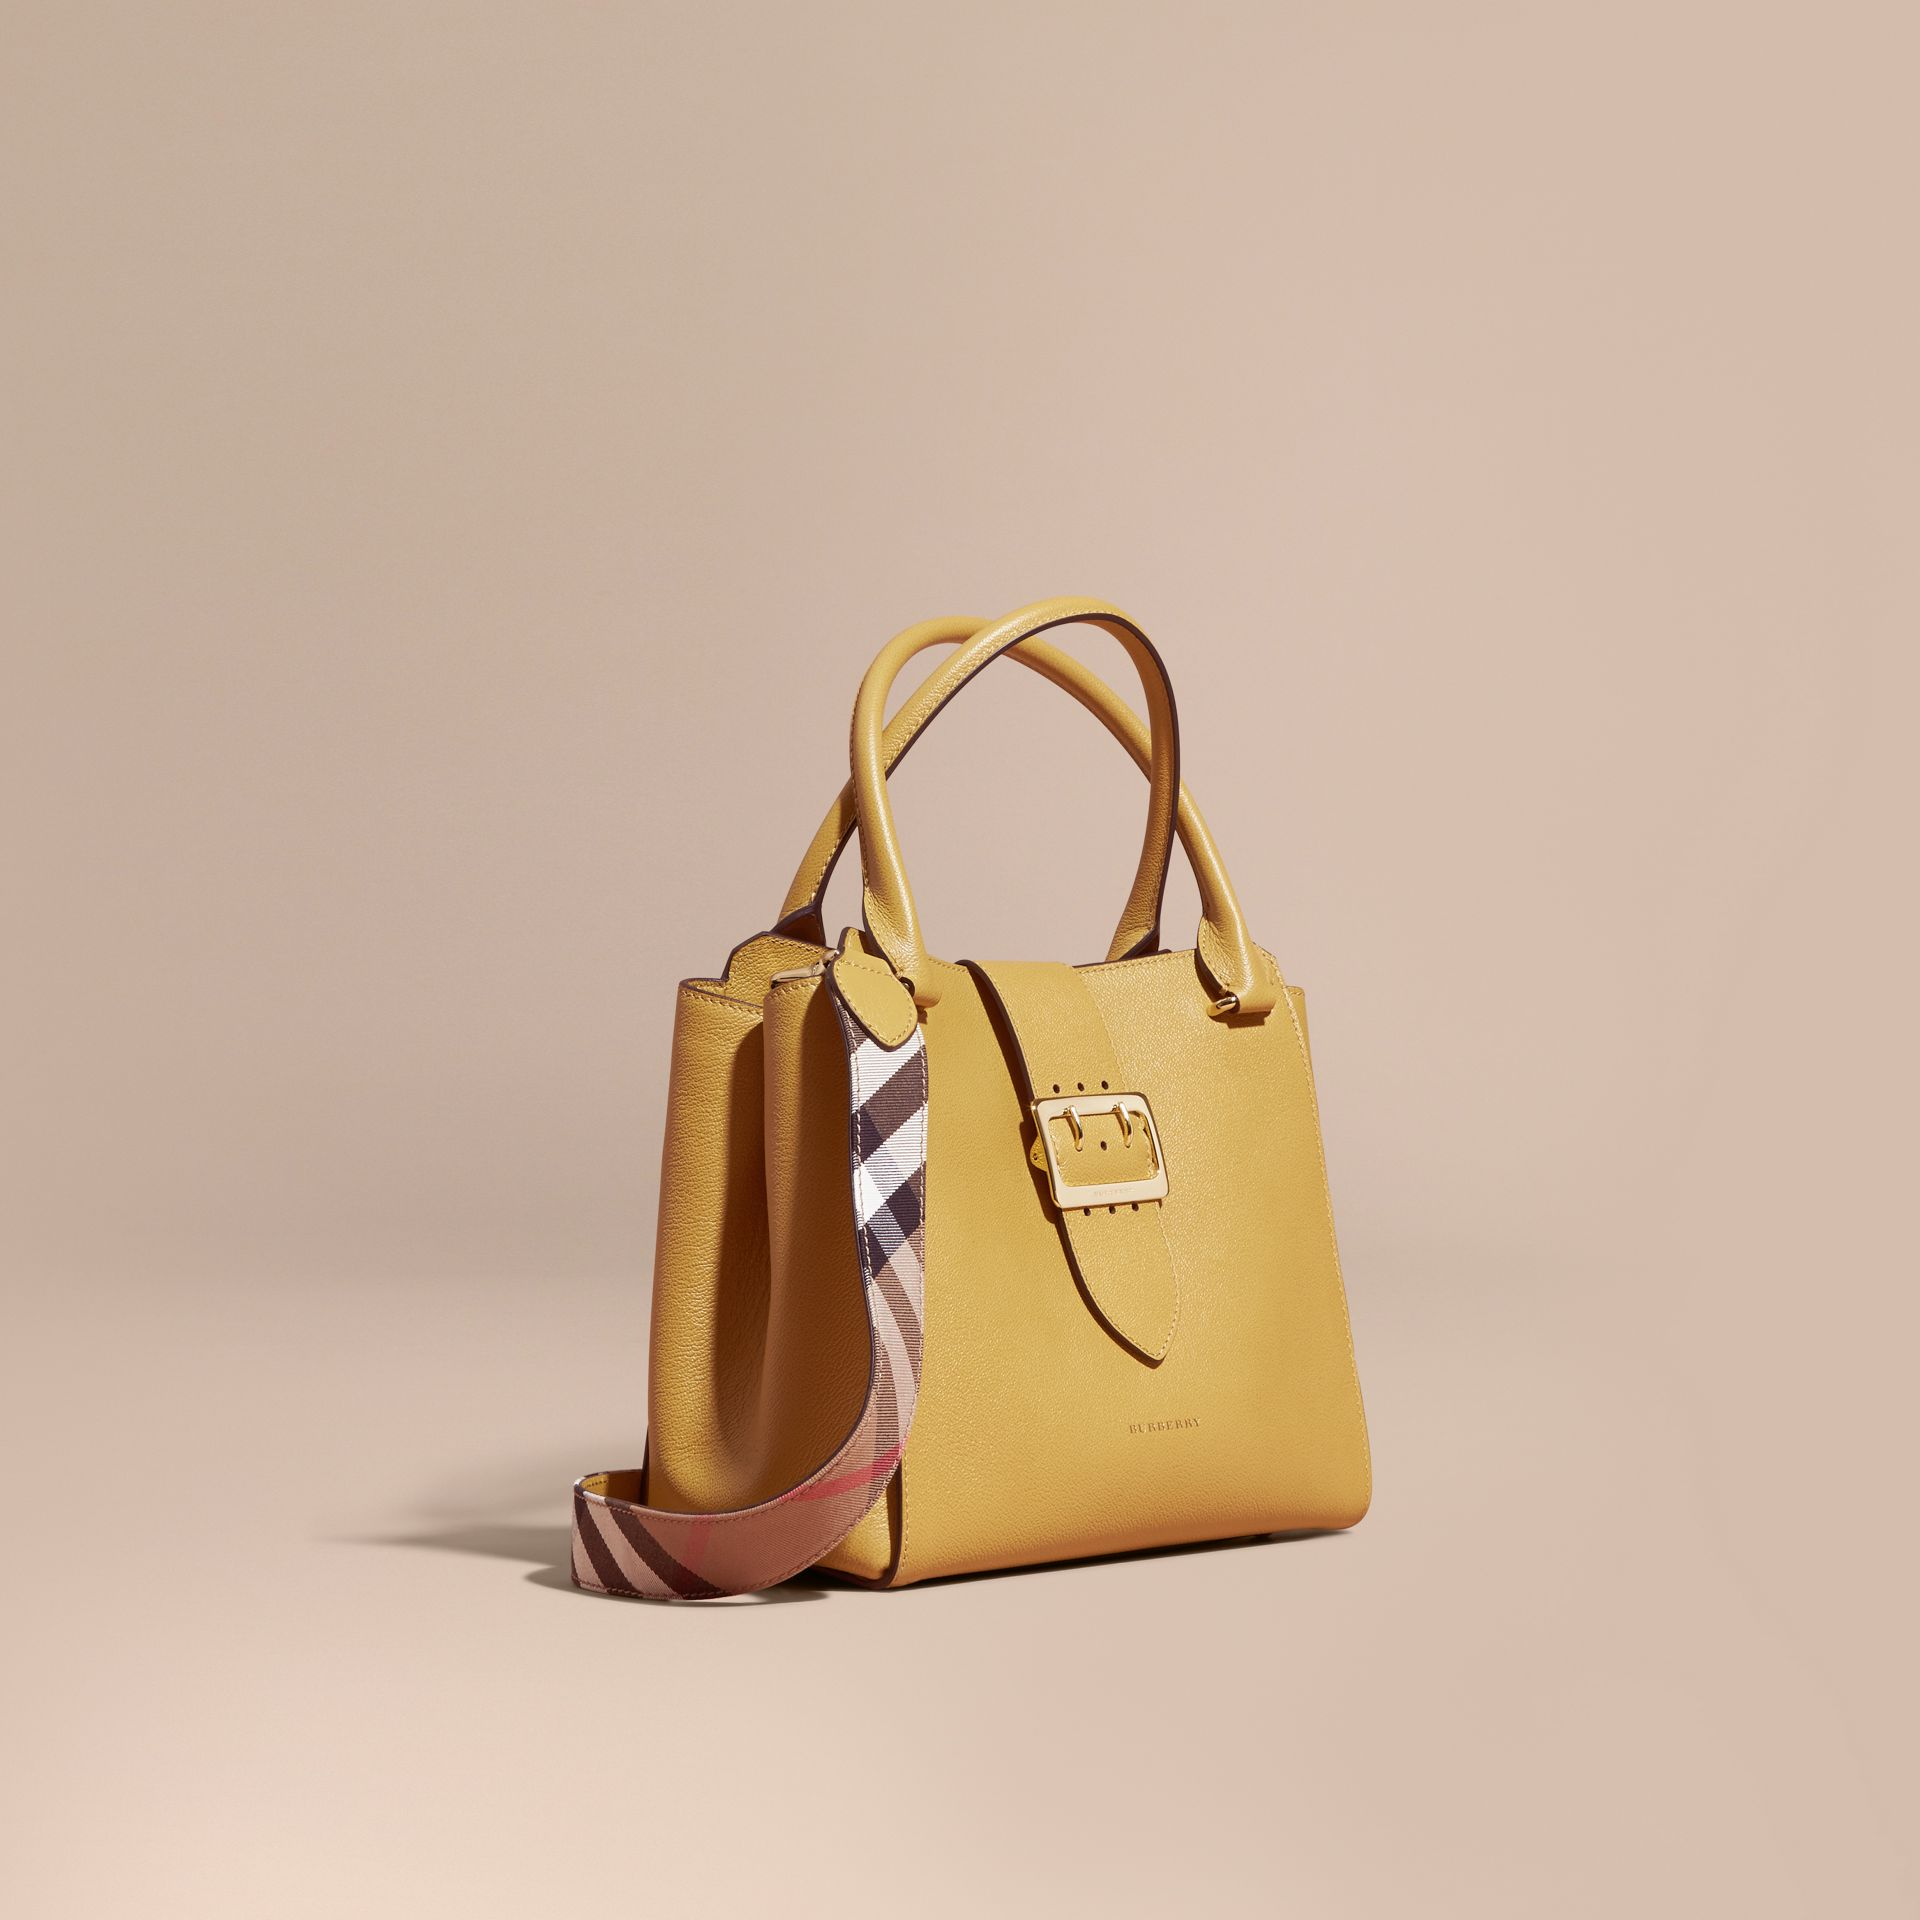 Quartz jaune Sac tote The Buckle medium en cuir grené Quartz Jaune - photo de la galerie 1